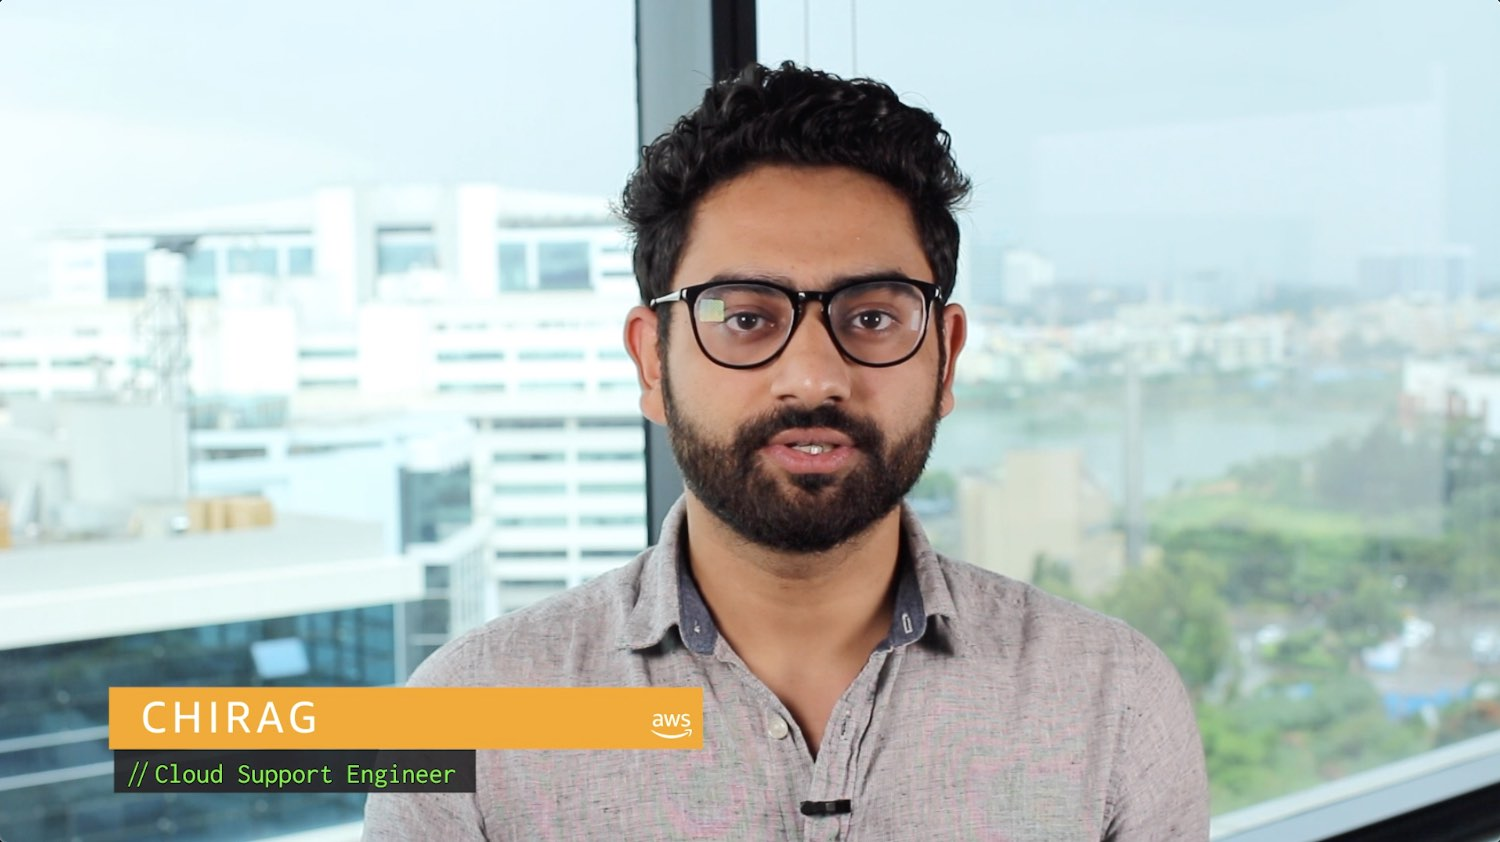 Watch Chirag's video to learn more